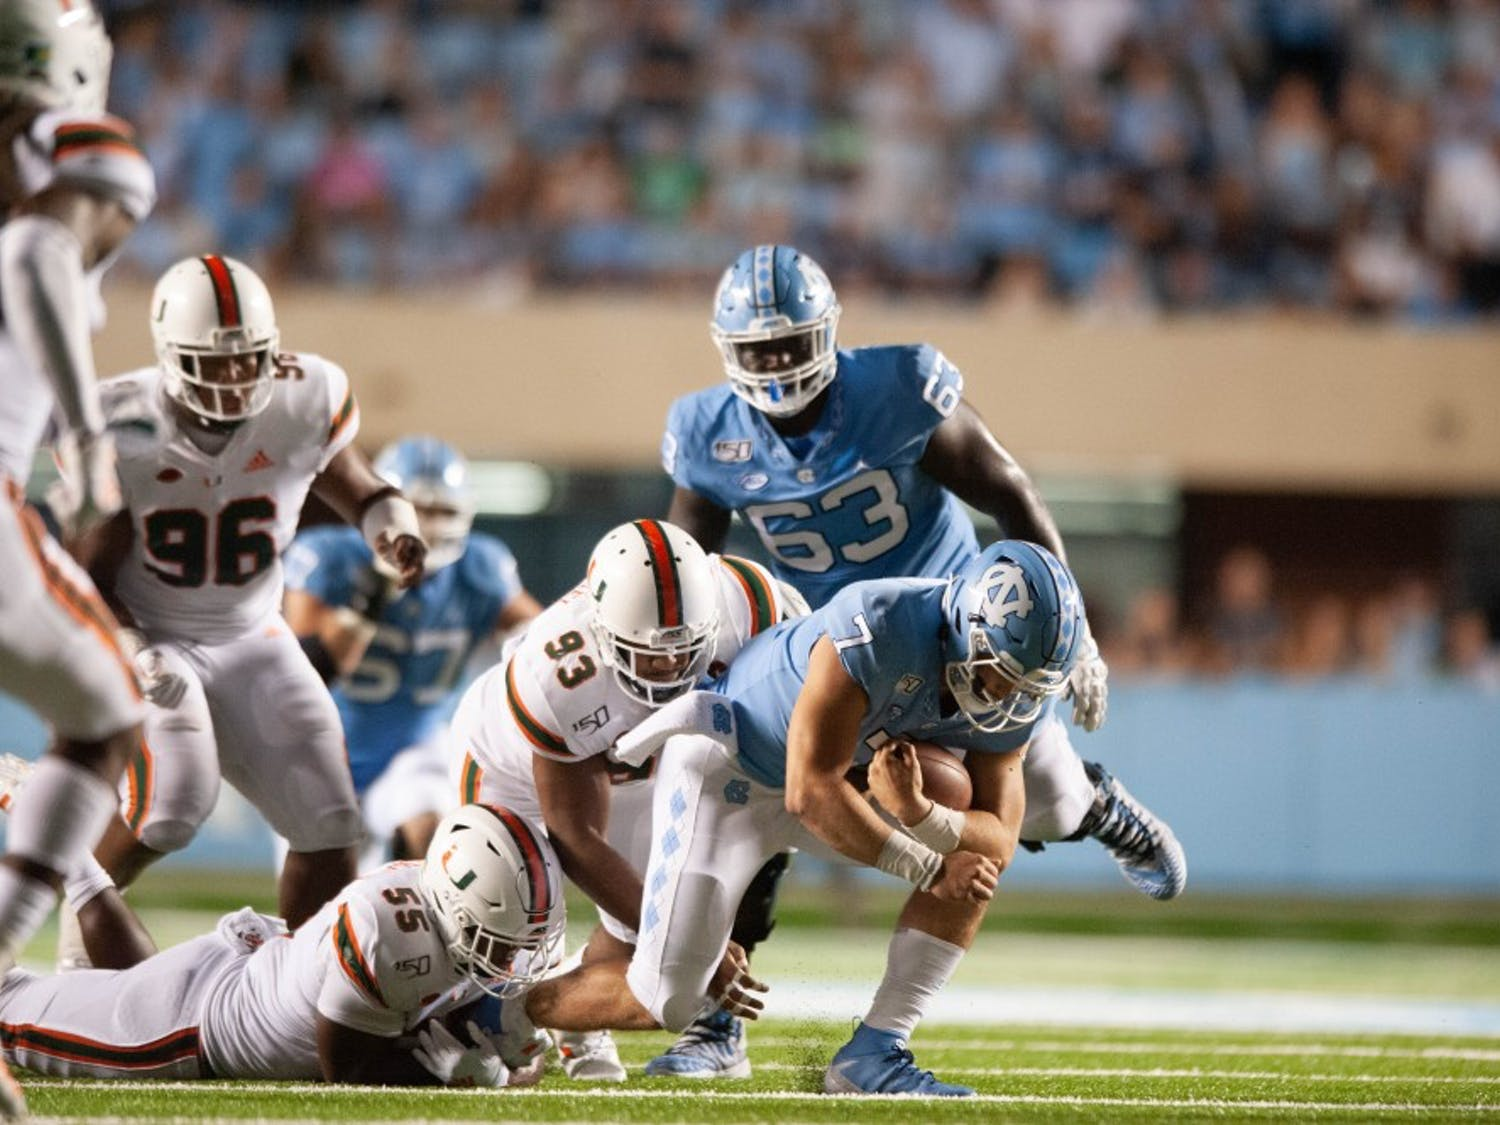 UNC quarterback Sam Howell (7) cradles the ball on Saturday, Sept. 7, 2019 in Kenan Memorial Stadium. UNC beat Miami 28-25.